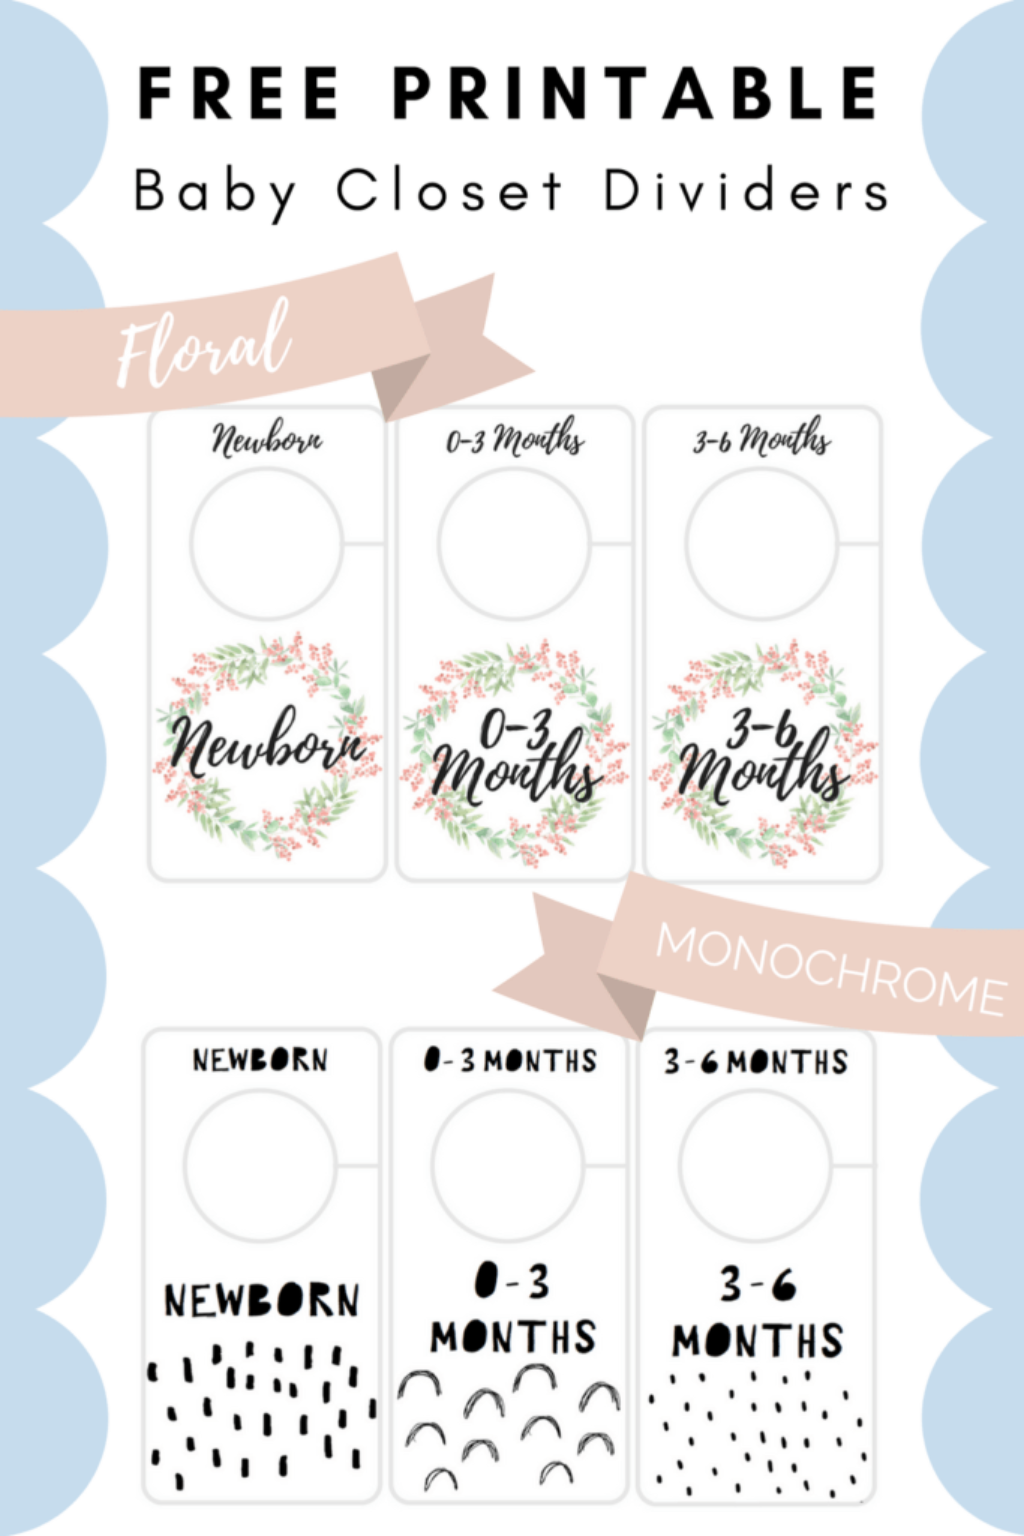 image about Printable Closet Dividers called Cost-free Printable Child Closet Dividers Preemie toward 24 Weeks - 2